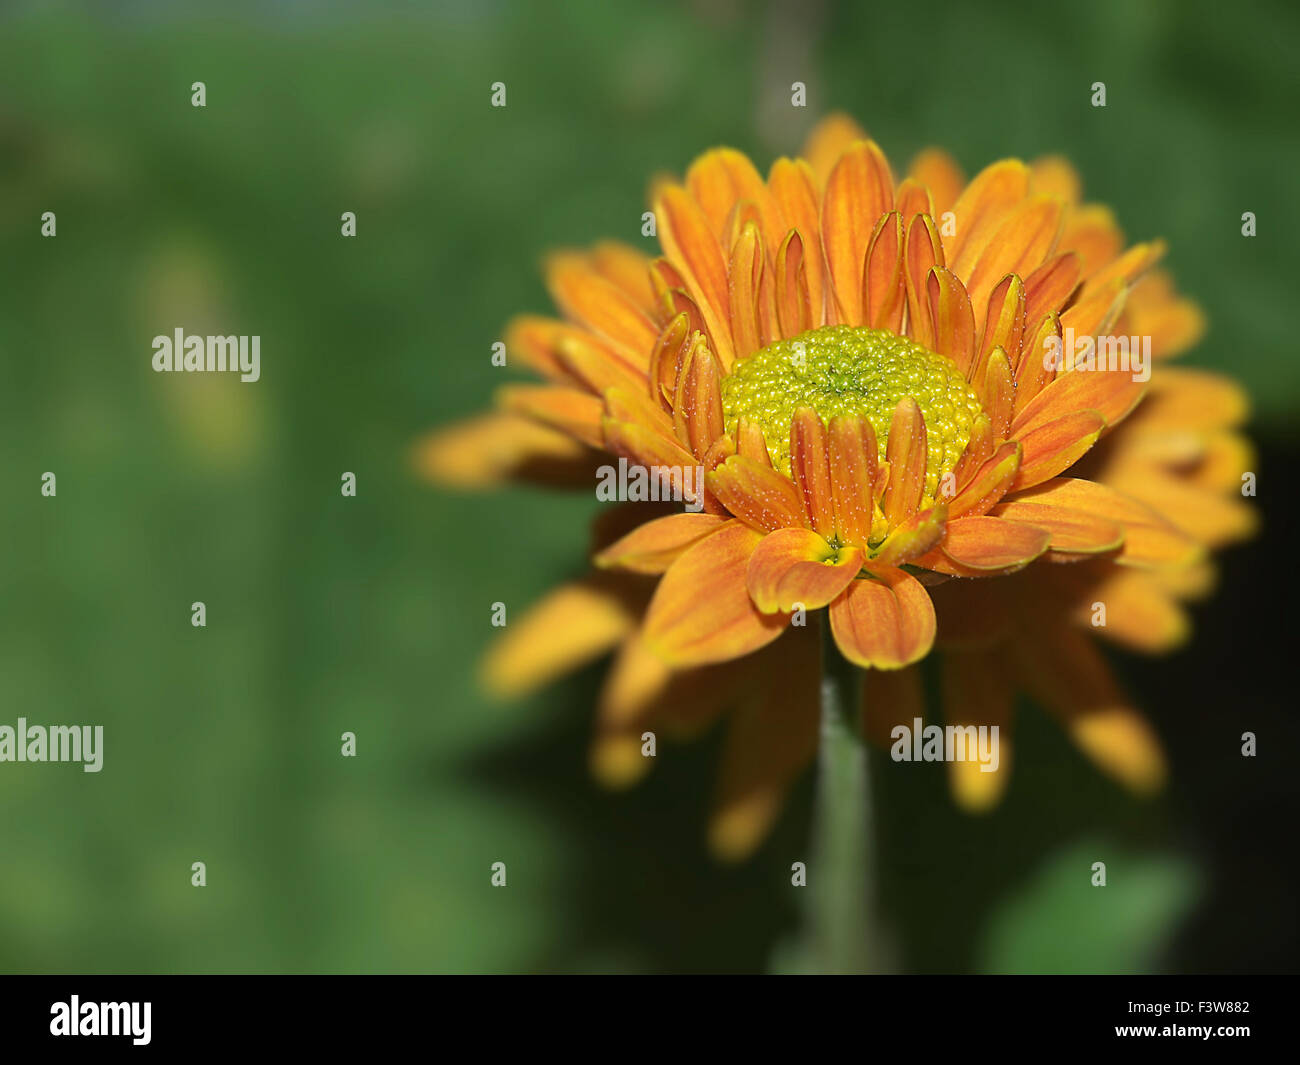 Herbst Chrysantheme Stock Photos Herbst Chrysantheme Stock Images